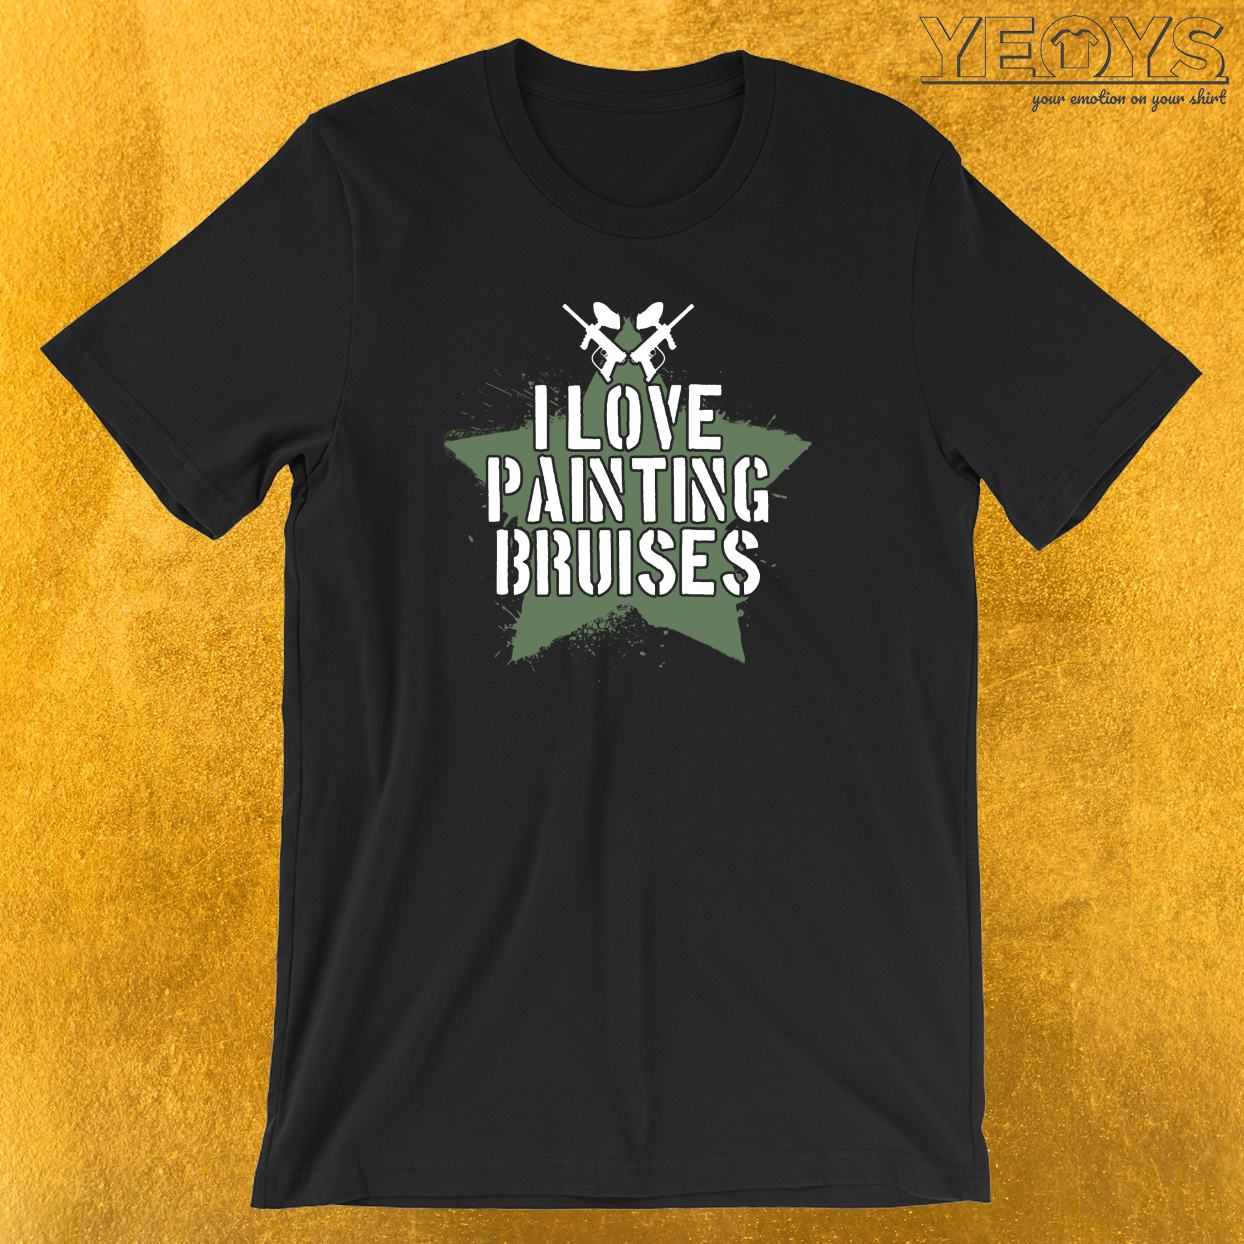 I Love Painting Bruises T-Shirt